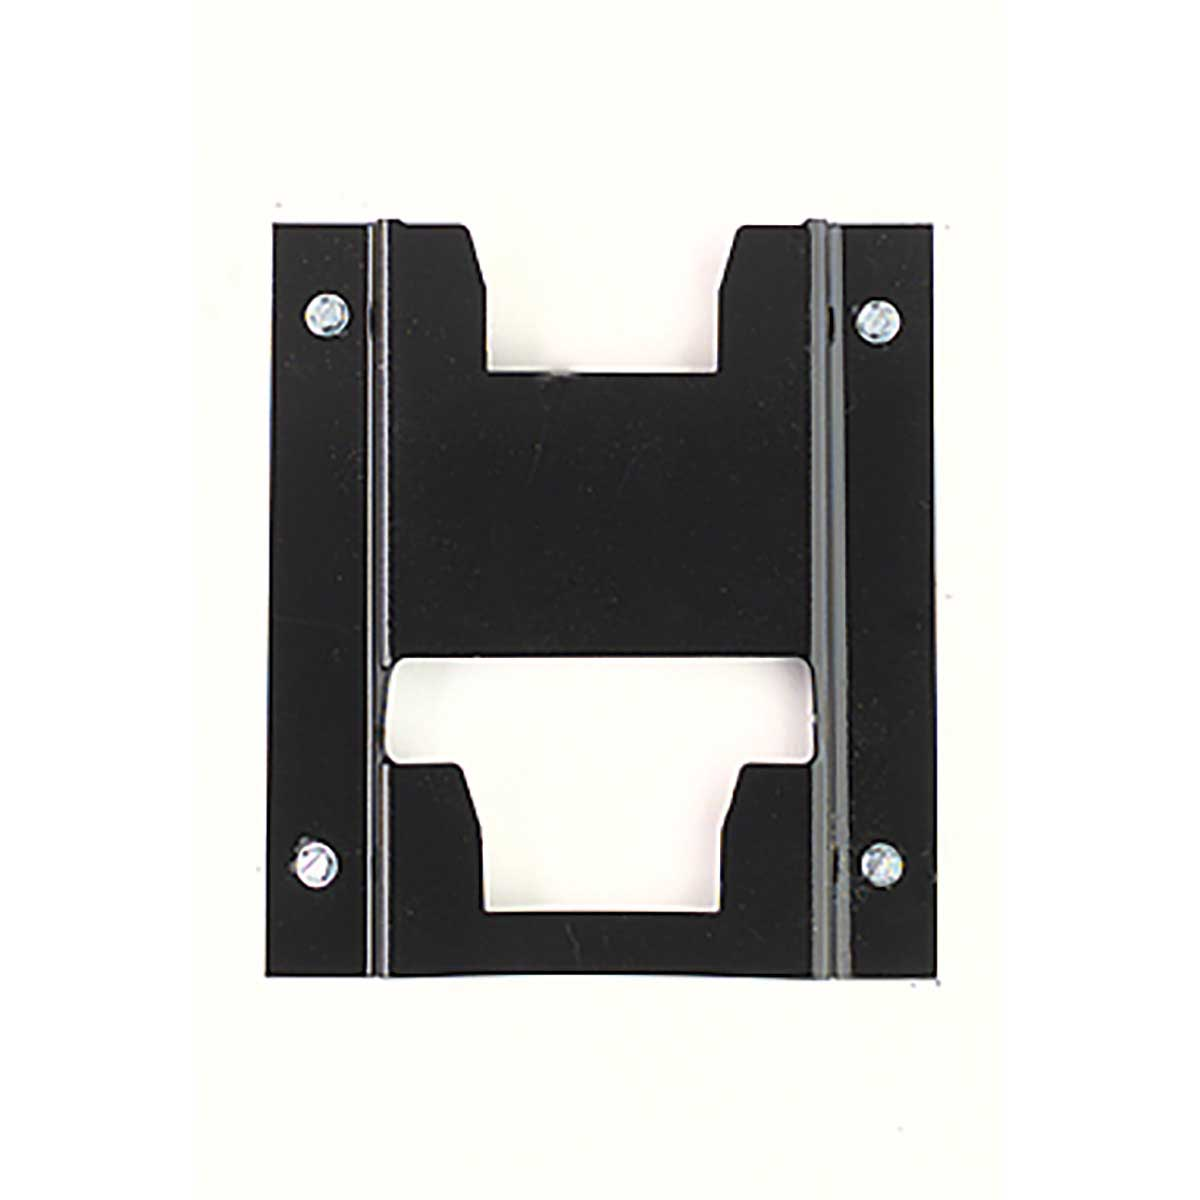 Metrovac Air Force Mounting Bracket for Dryers